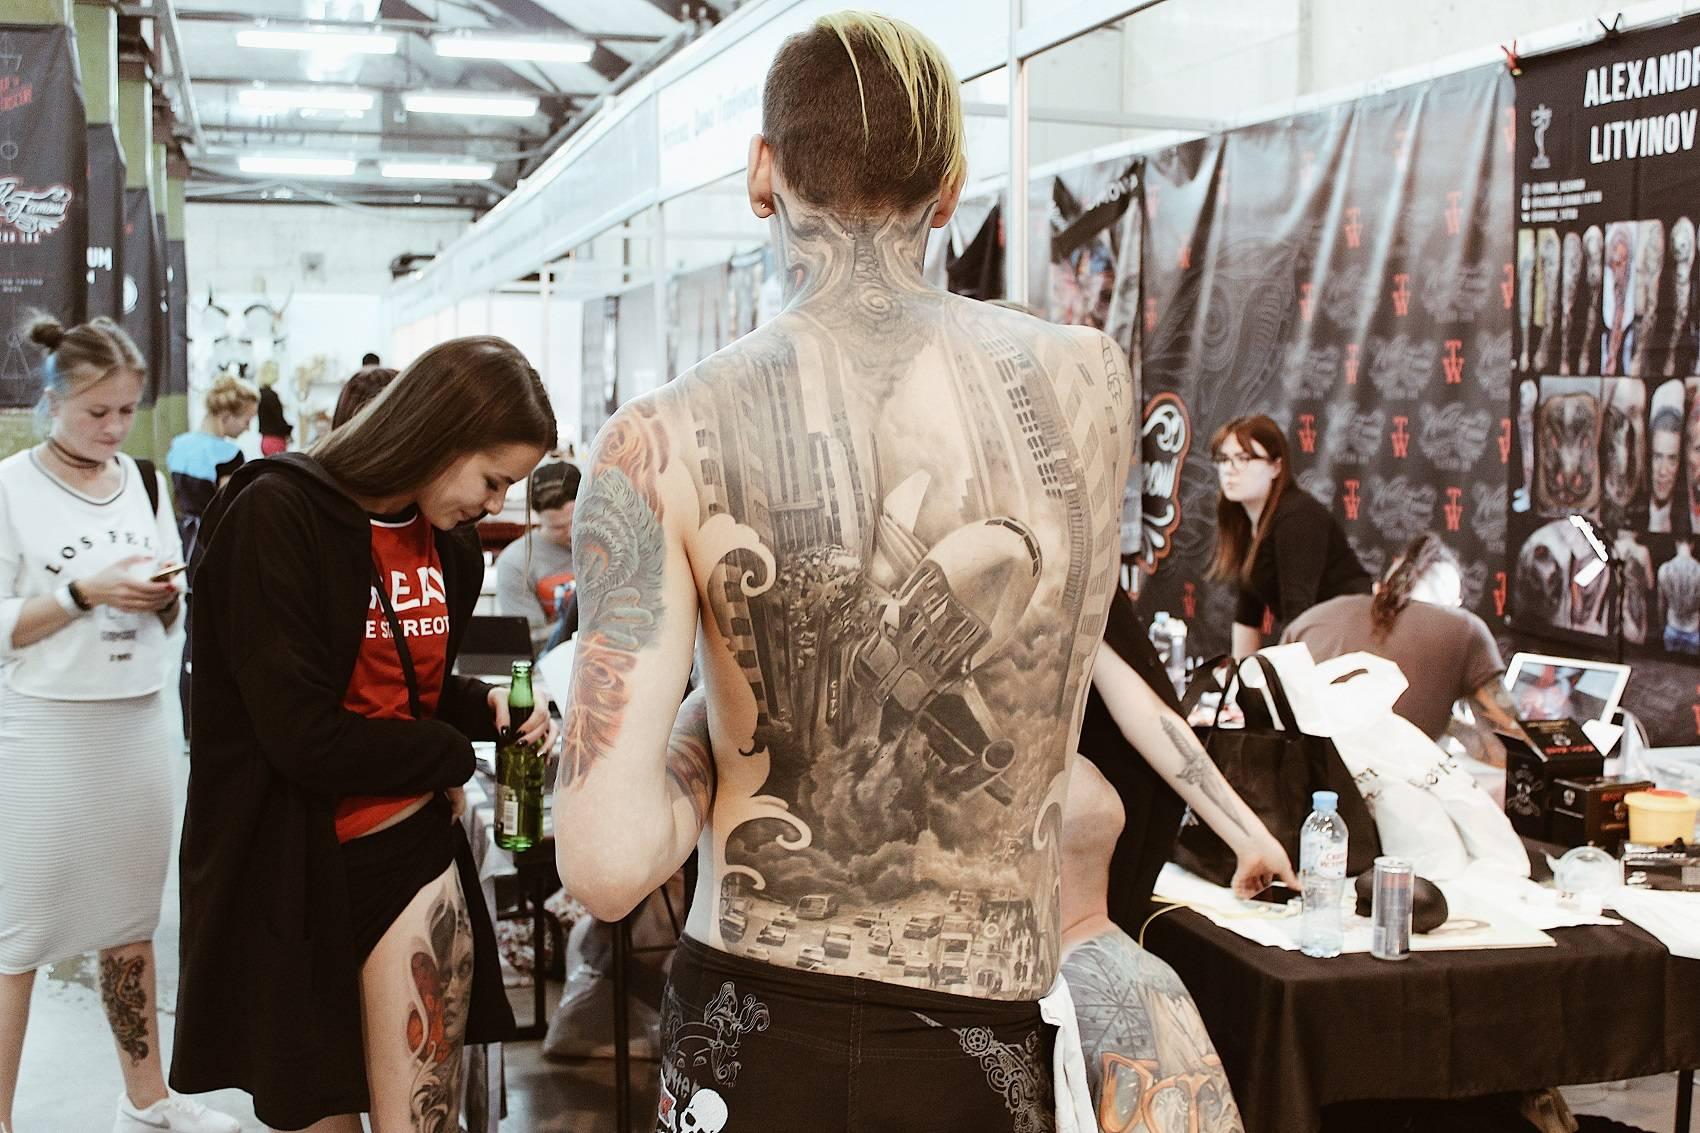 International Moscow Tattoo Week - Stone Forest